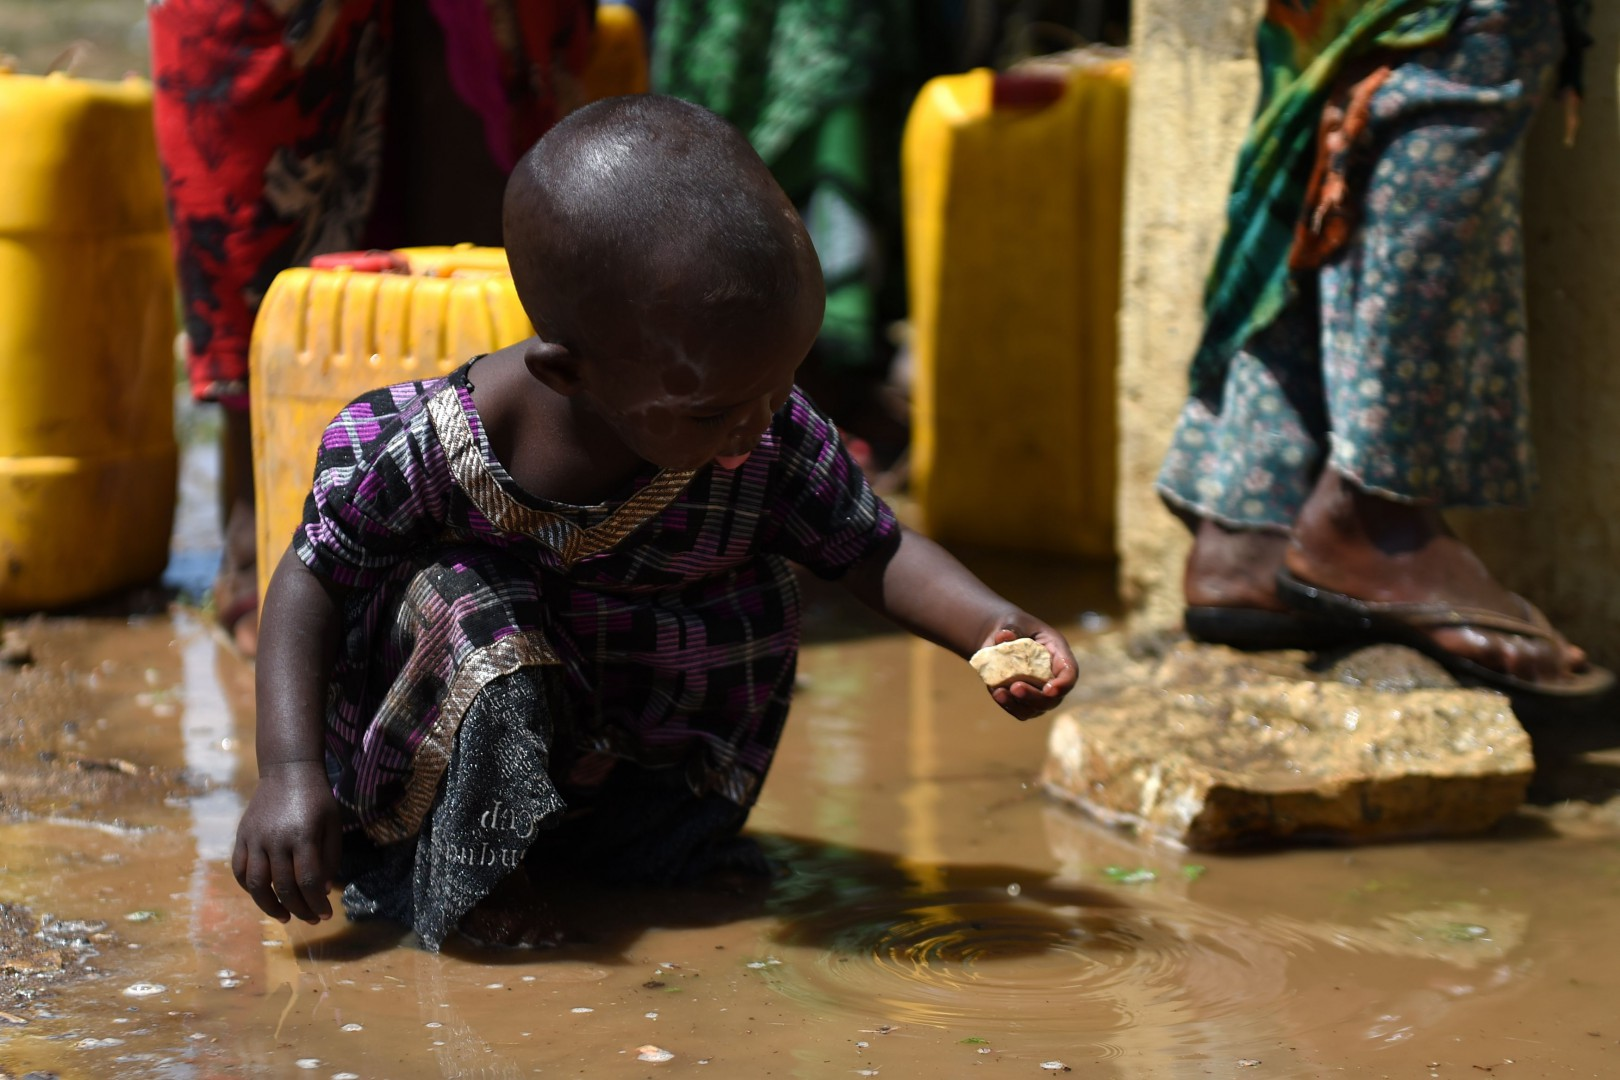 A young girl plays with a stone in a puddle of water in the village of Afraaga, Somaliland where charity CARE International have built a storage tank and installed pipelines and taps to give villagers access to clean water from a nearby borehole. PRESS ASSOCIATION Photo. Picture date: Friday May 12, 2017. Villagers across the self-proclaimed state of Somaliland are suffering drought and are on the verge of famine after a lack of rainfall in recent years. See PA story CHARITY Famine. Photo credit should read: Joe Giddens/PA Wire